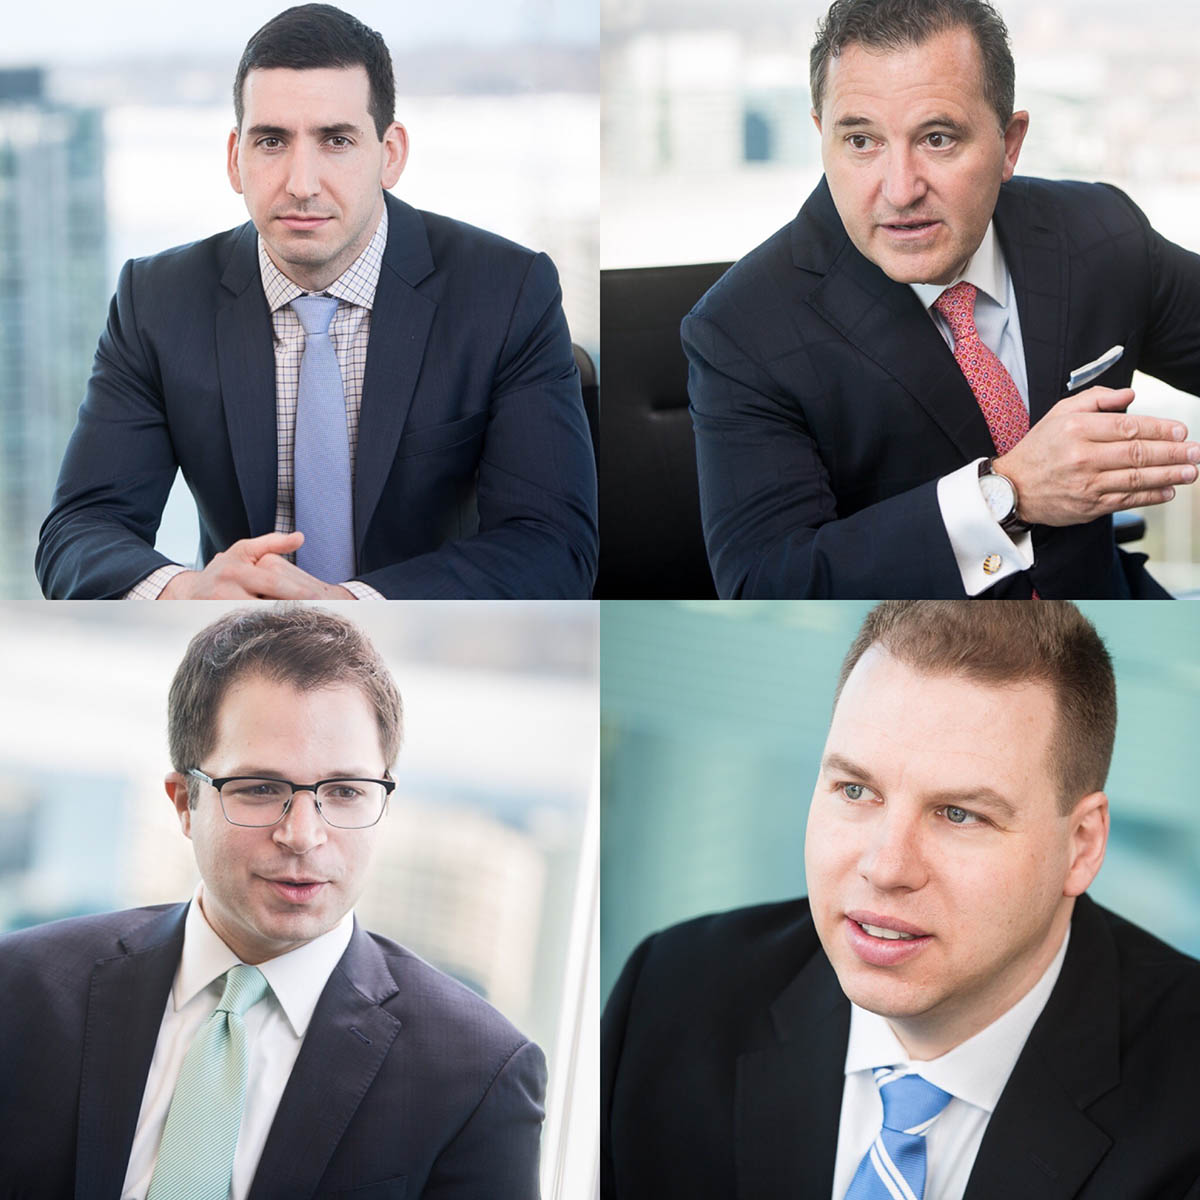 Location Shoot — Founding Members of Infor Financial